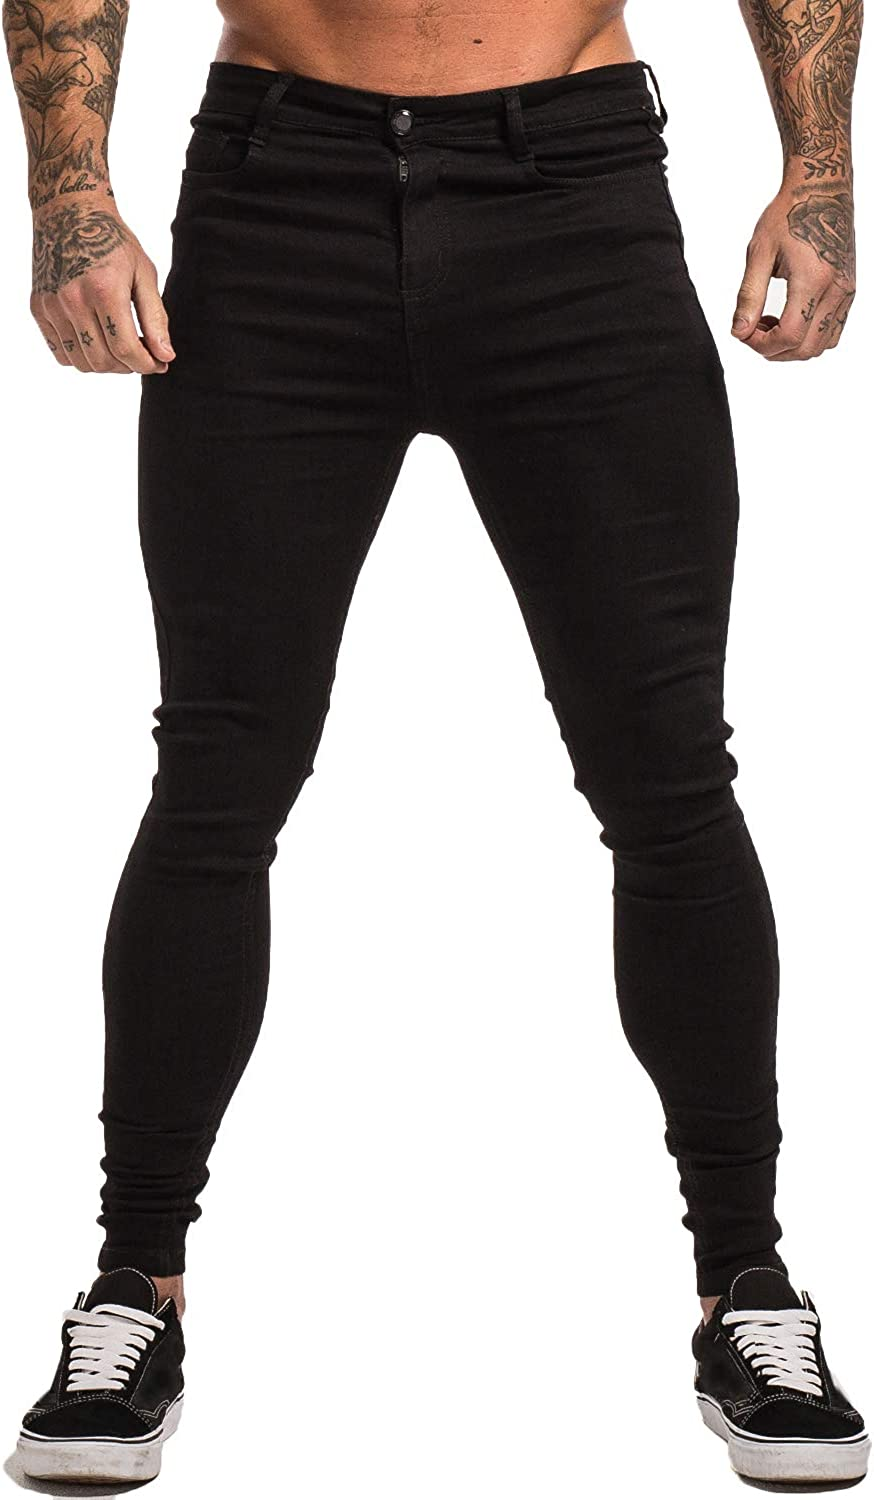 GINGTTO Men's Ripped Jeans Slim Fit Skinny Stretch Jeans Pants at  Men's Clothing store